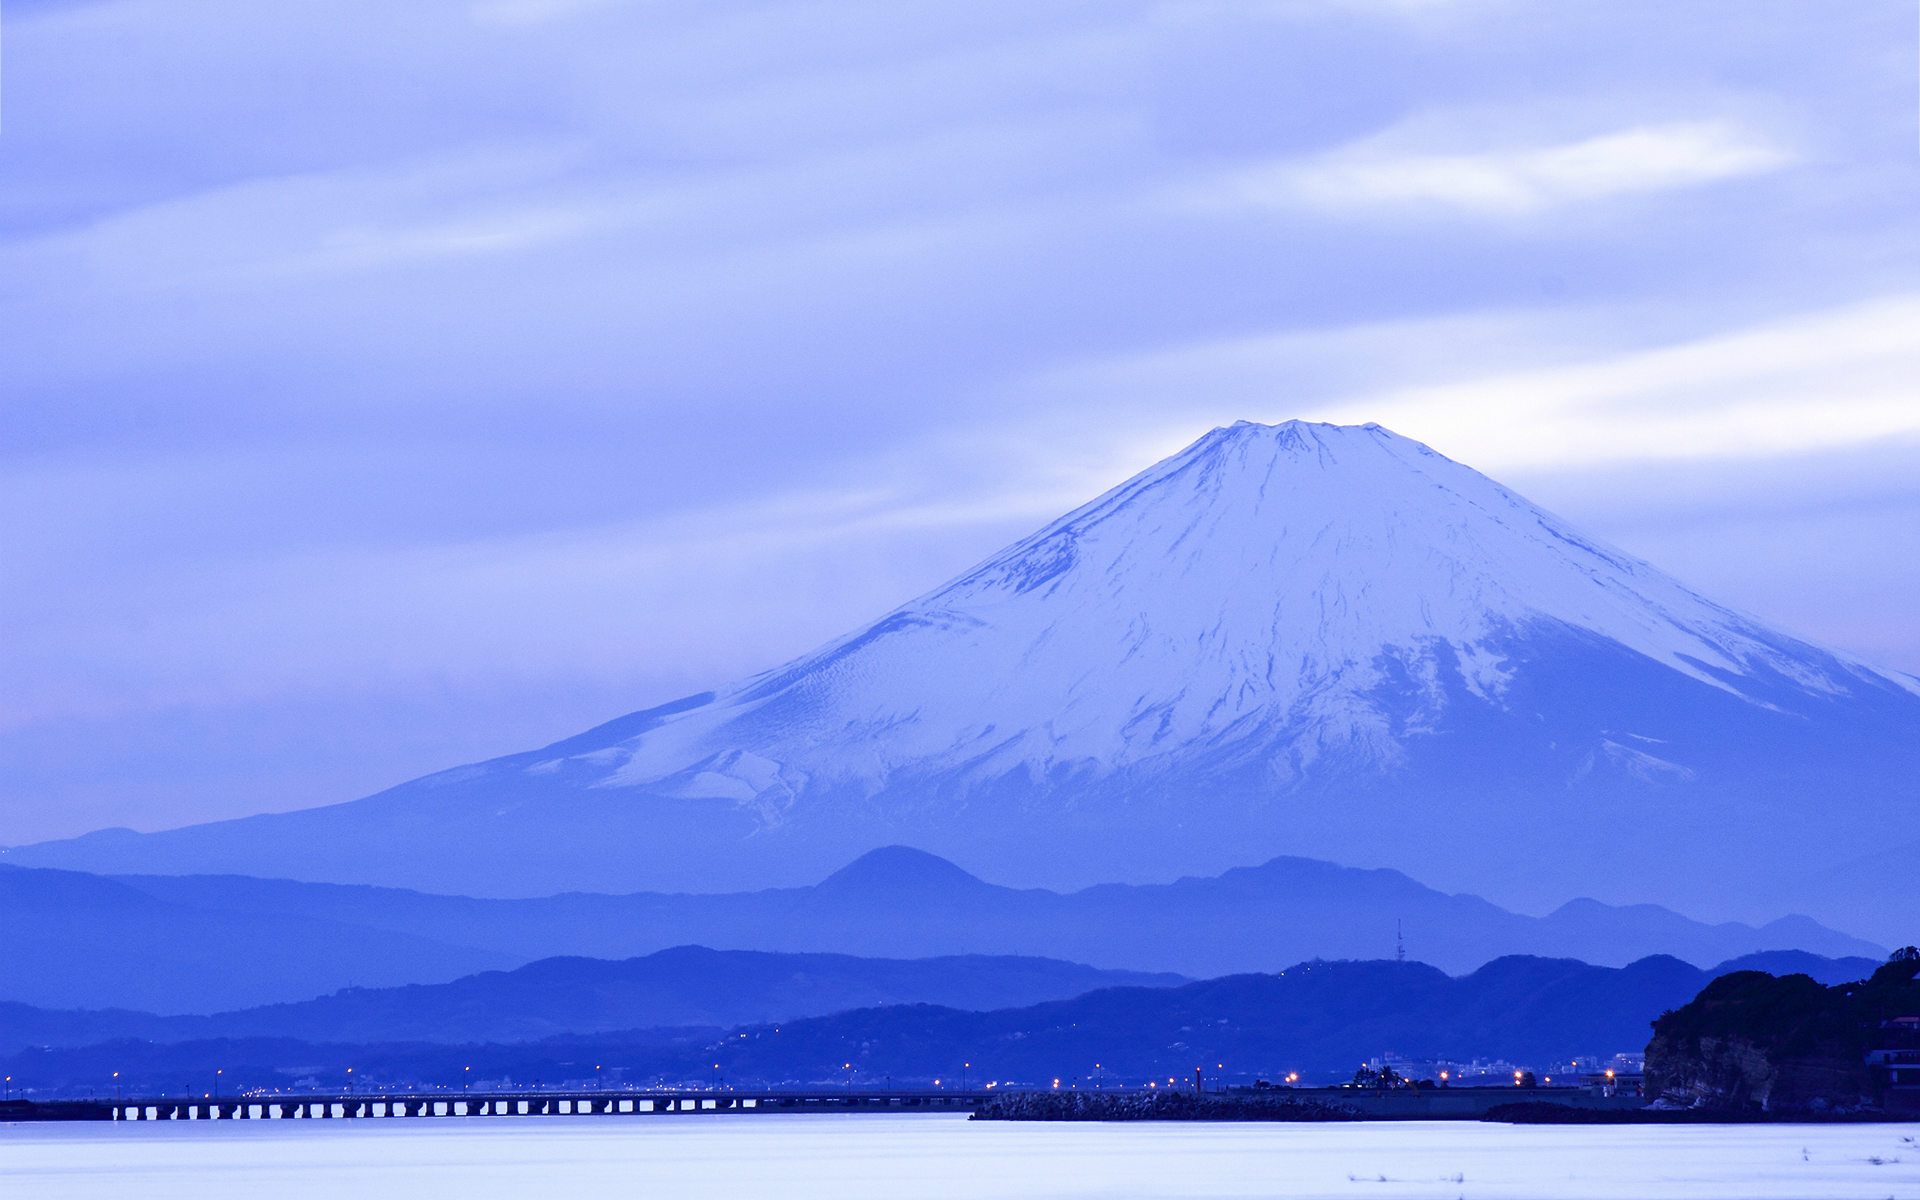 mt fuji desktop wallpaper 51292